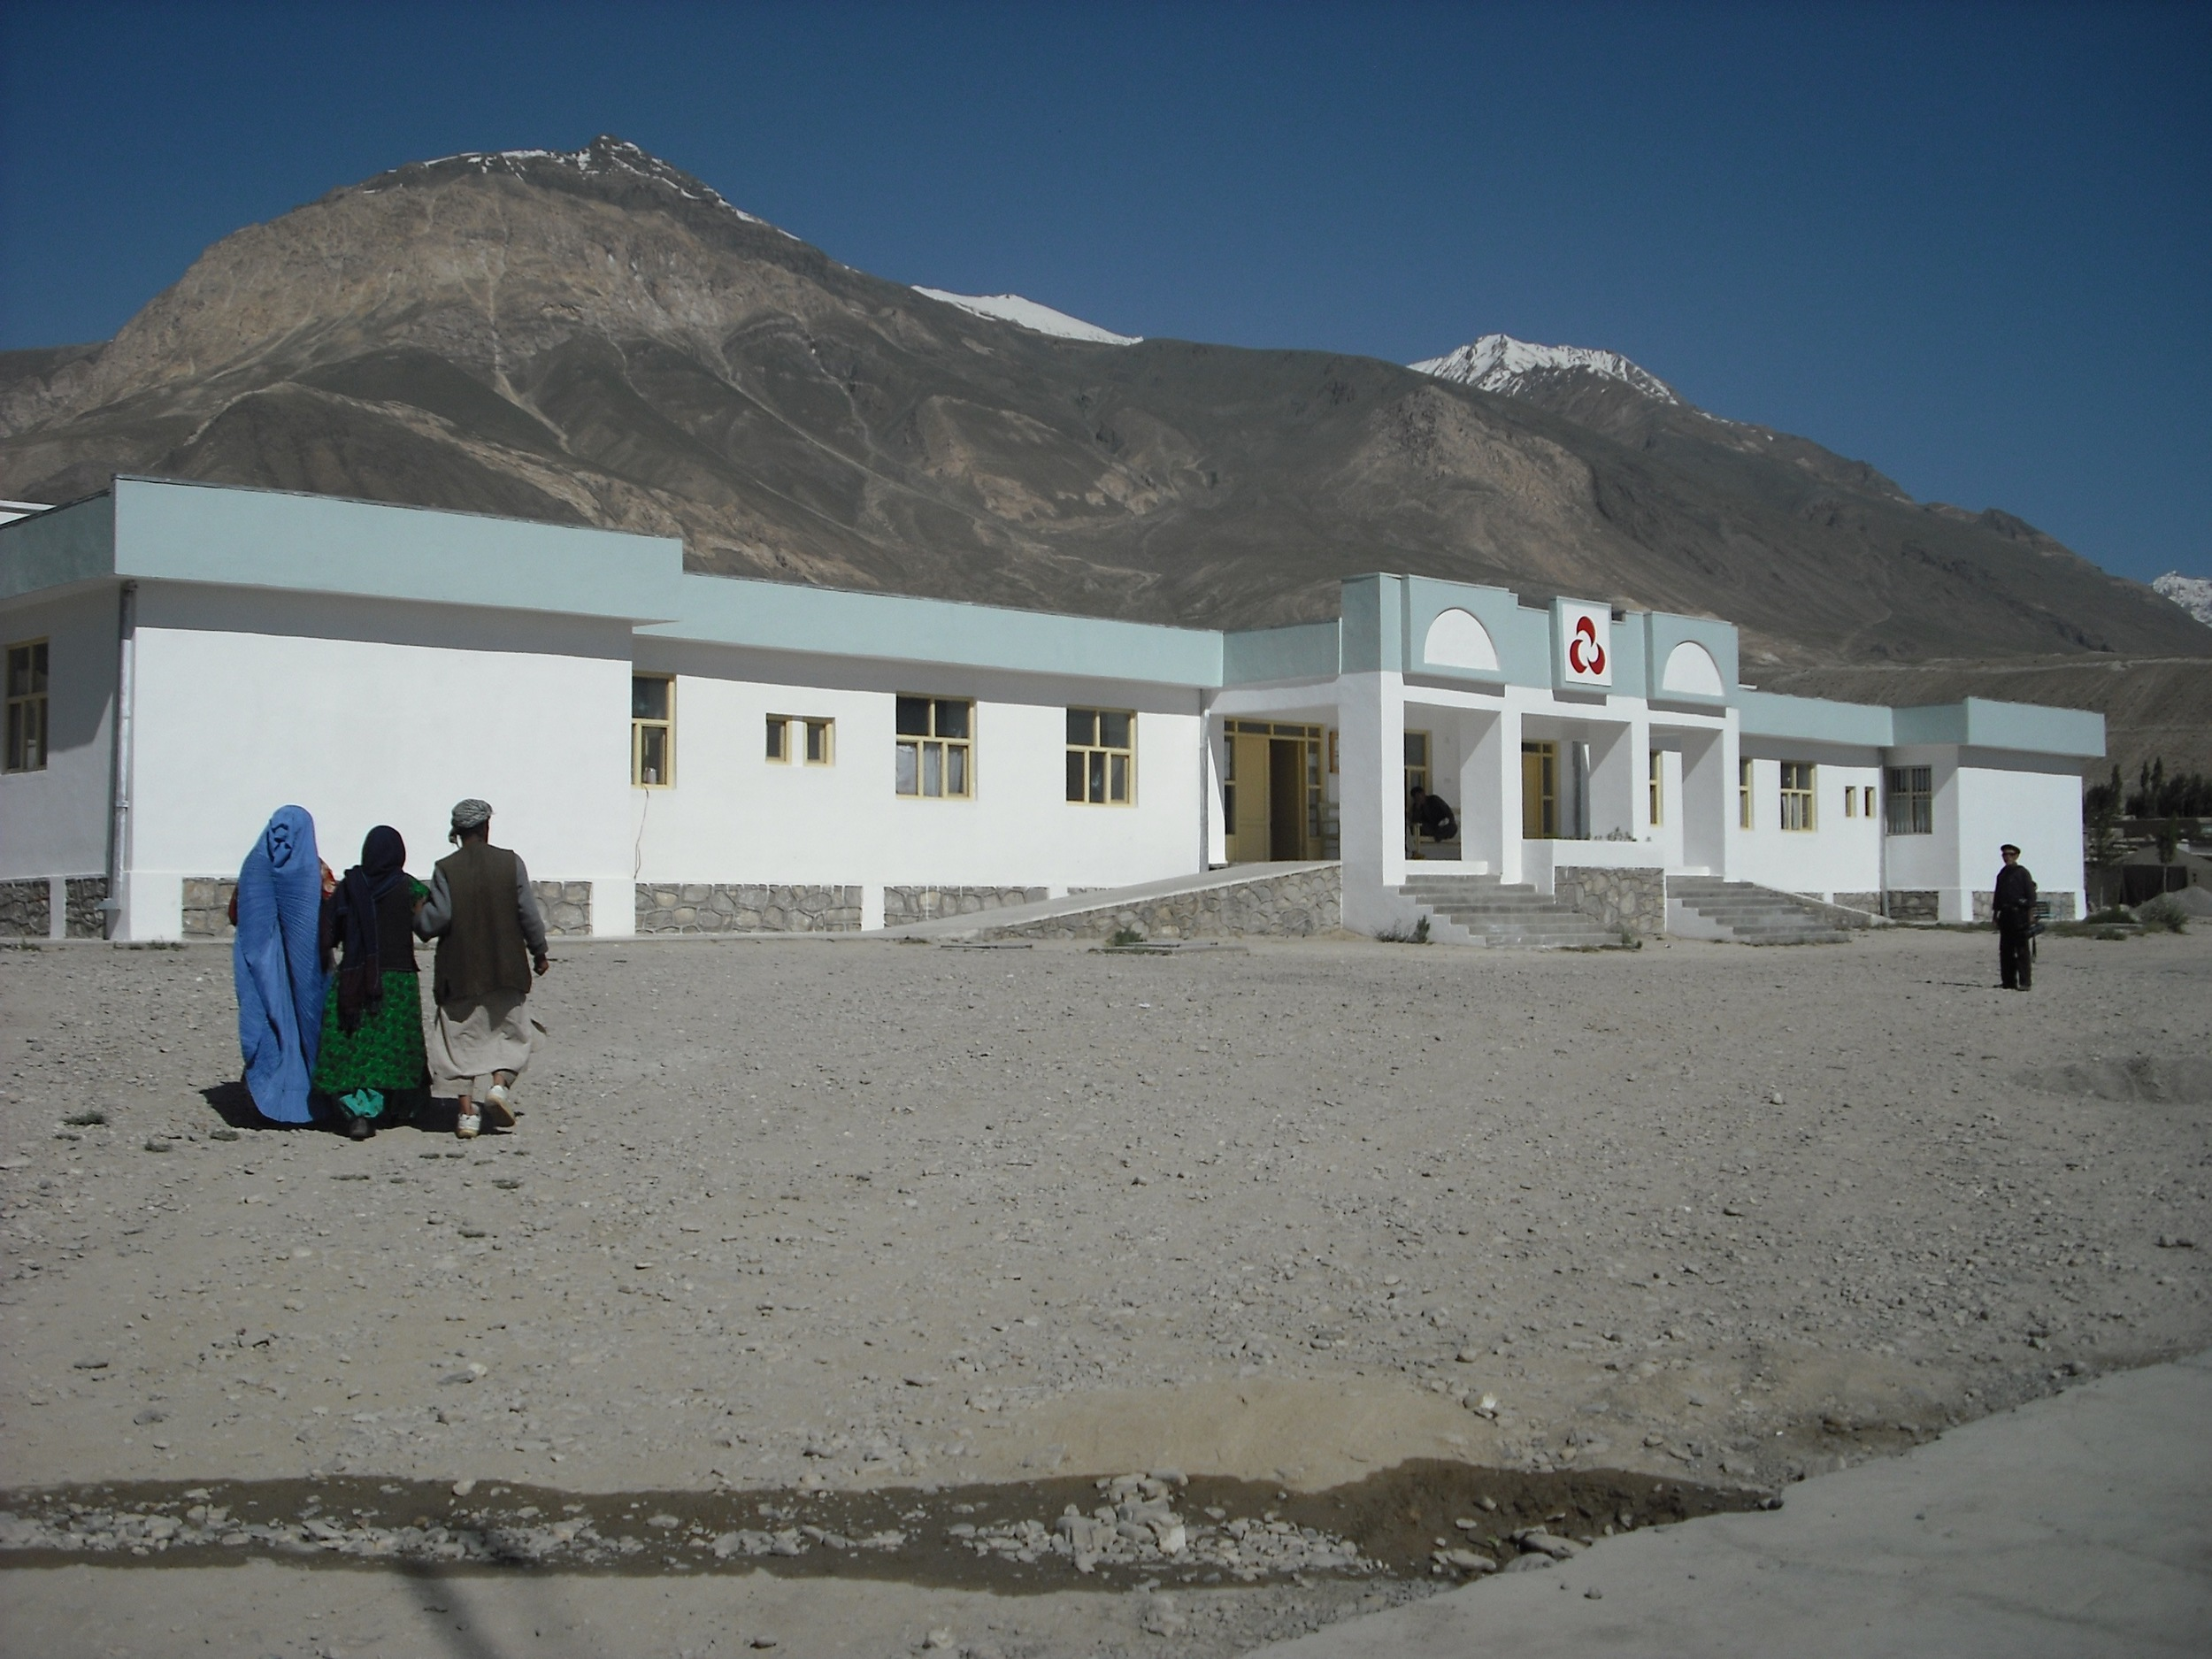 The Aga Khan Health Services Clinic in Afghan Badakhshan.  In the film, Bridging the Divide, Dr. Shirinbek visits this clinic and is extremely impressed with its technology.  Since the making of the film, Dr. Shirinbek has begun to work here; the clinic collects its most difficult surgeries and Dr. Shirinbek periodically travels to Afghan Badakhshan to perform them.